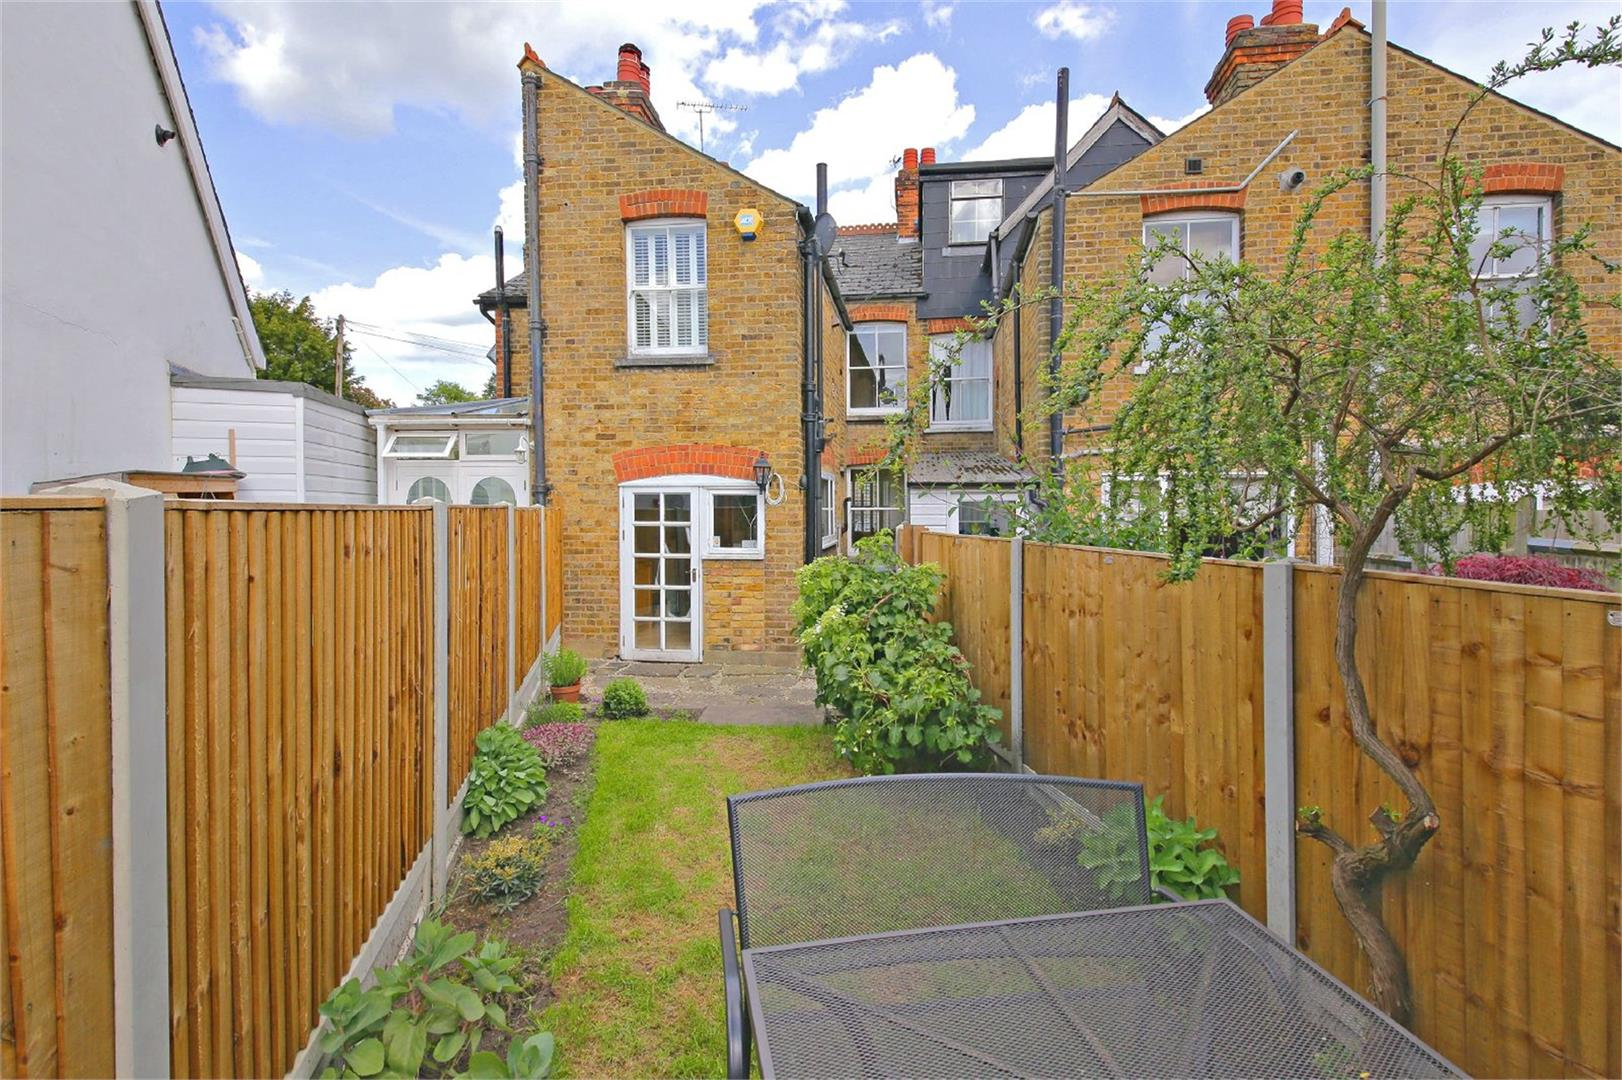 2 bed to rent in Letchmore Heath - (Property Image 8)